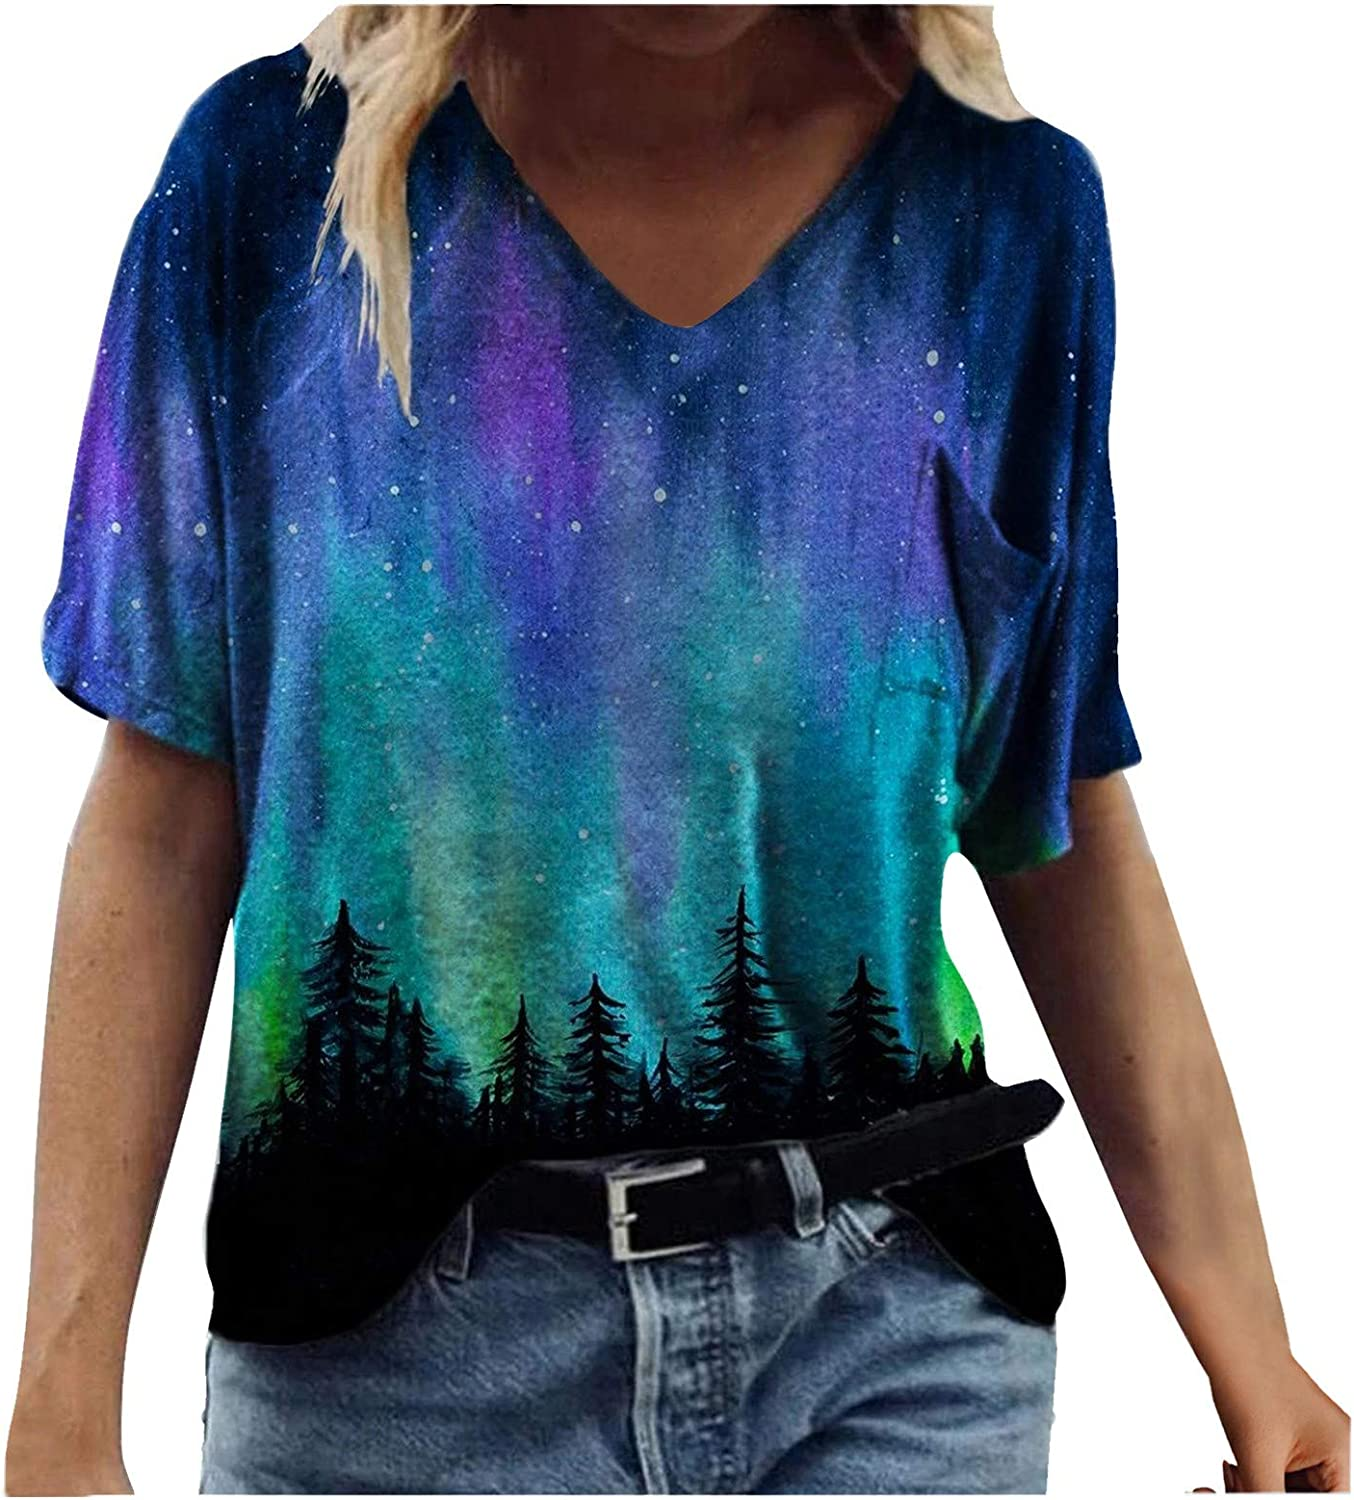 FABIURT Summer Tops for Women Short Sleeve Tunic Tops V Neck Vintage Graphic Printed Tee Shirt Casual Comfy Blouses Tops